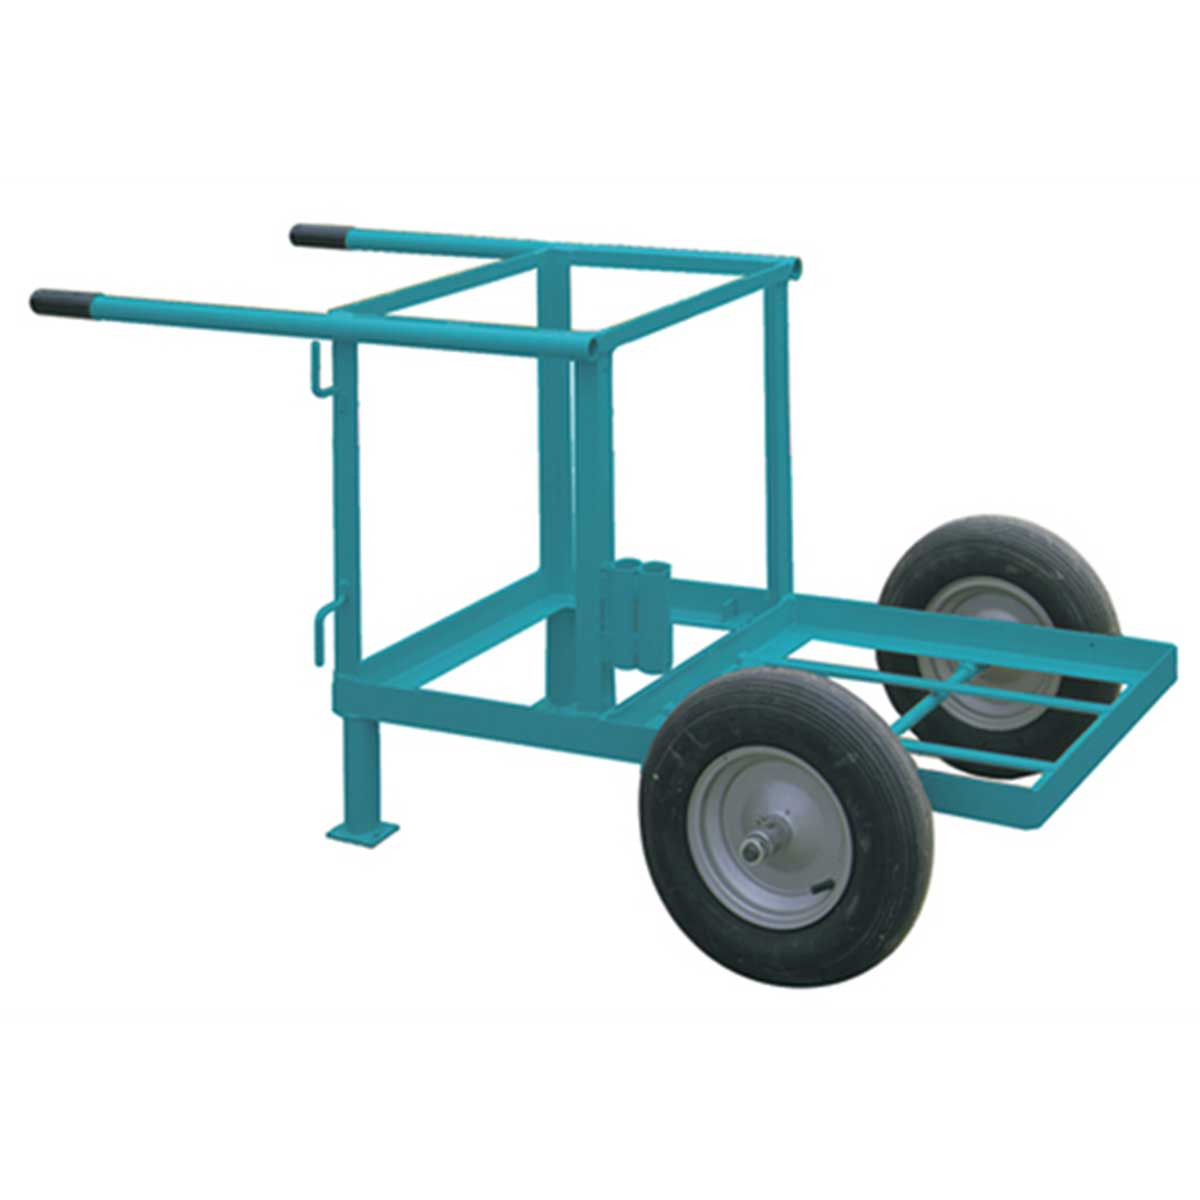 Bartell Cart concrete form Sprayer